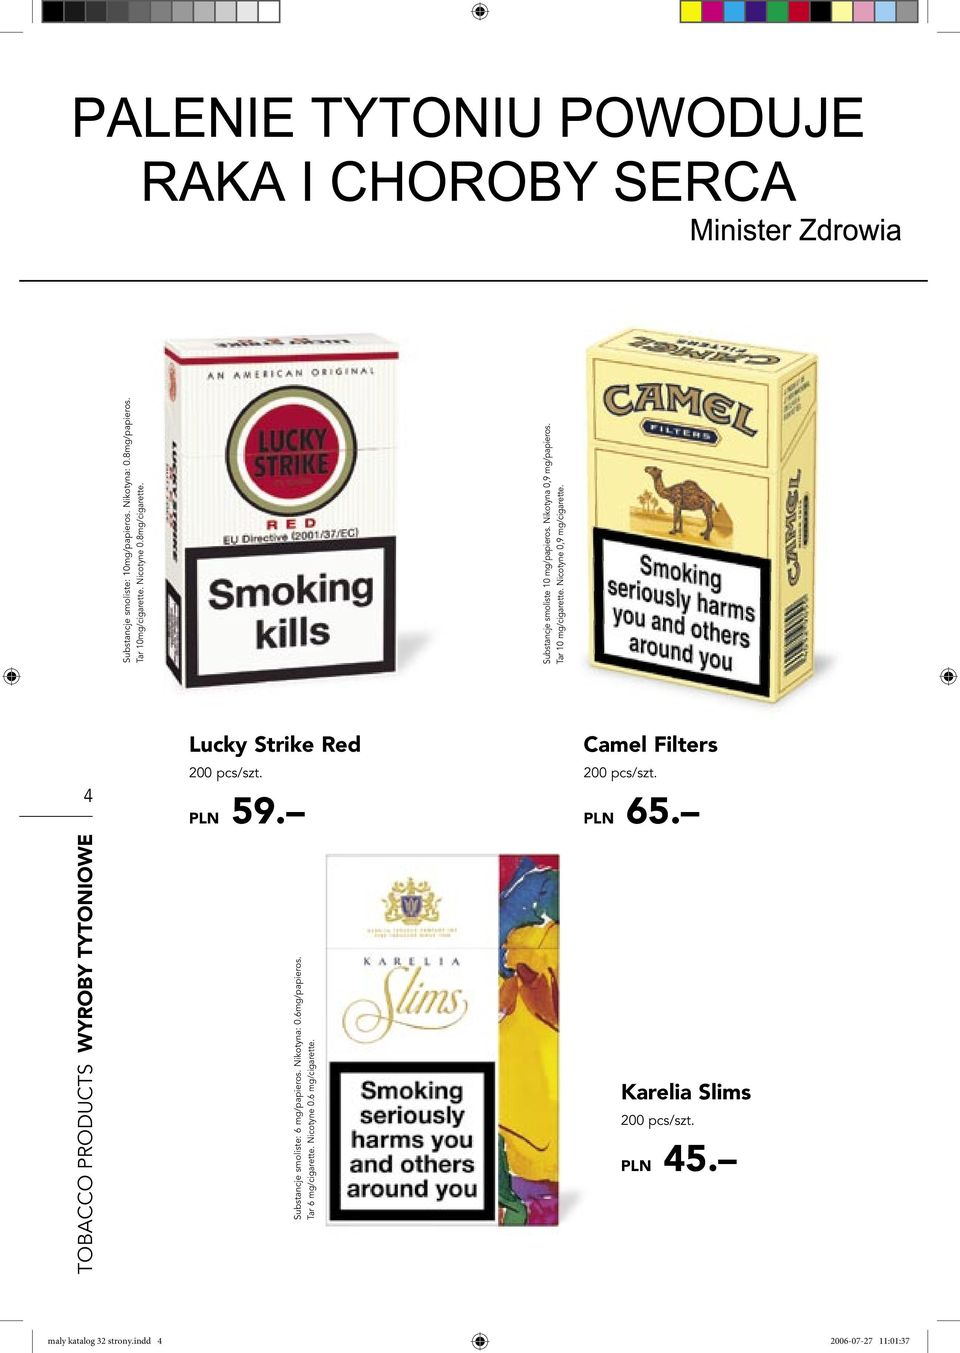 4 Lucky Strike Red 200 pcs/szt. PLN 59. Camel Filters 200 pcs/szt. PLN 65.